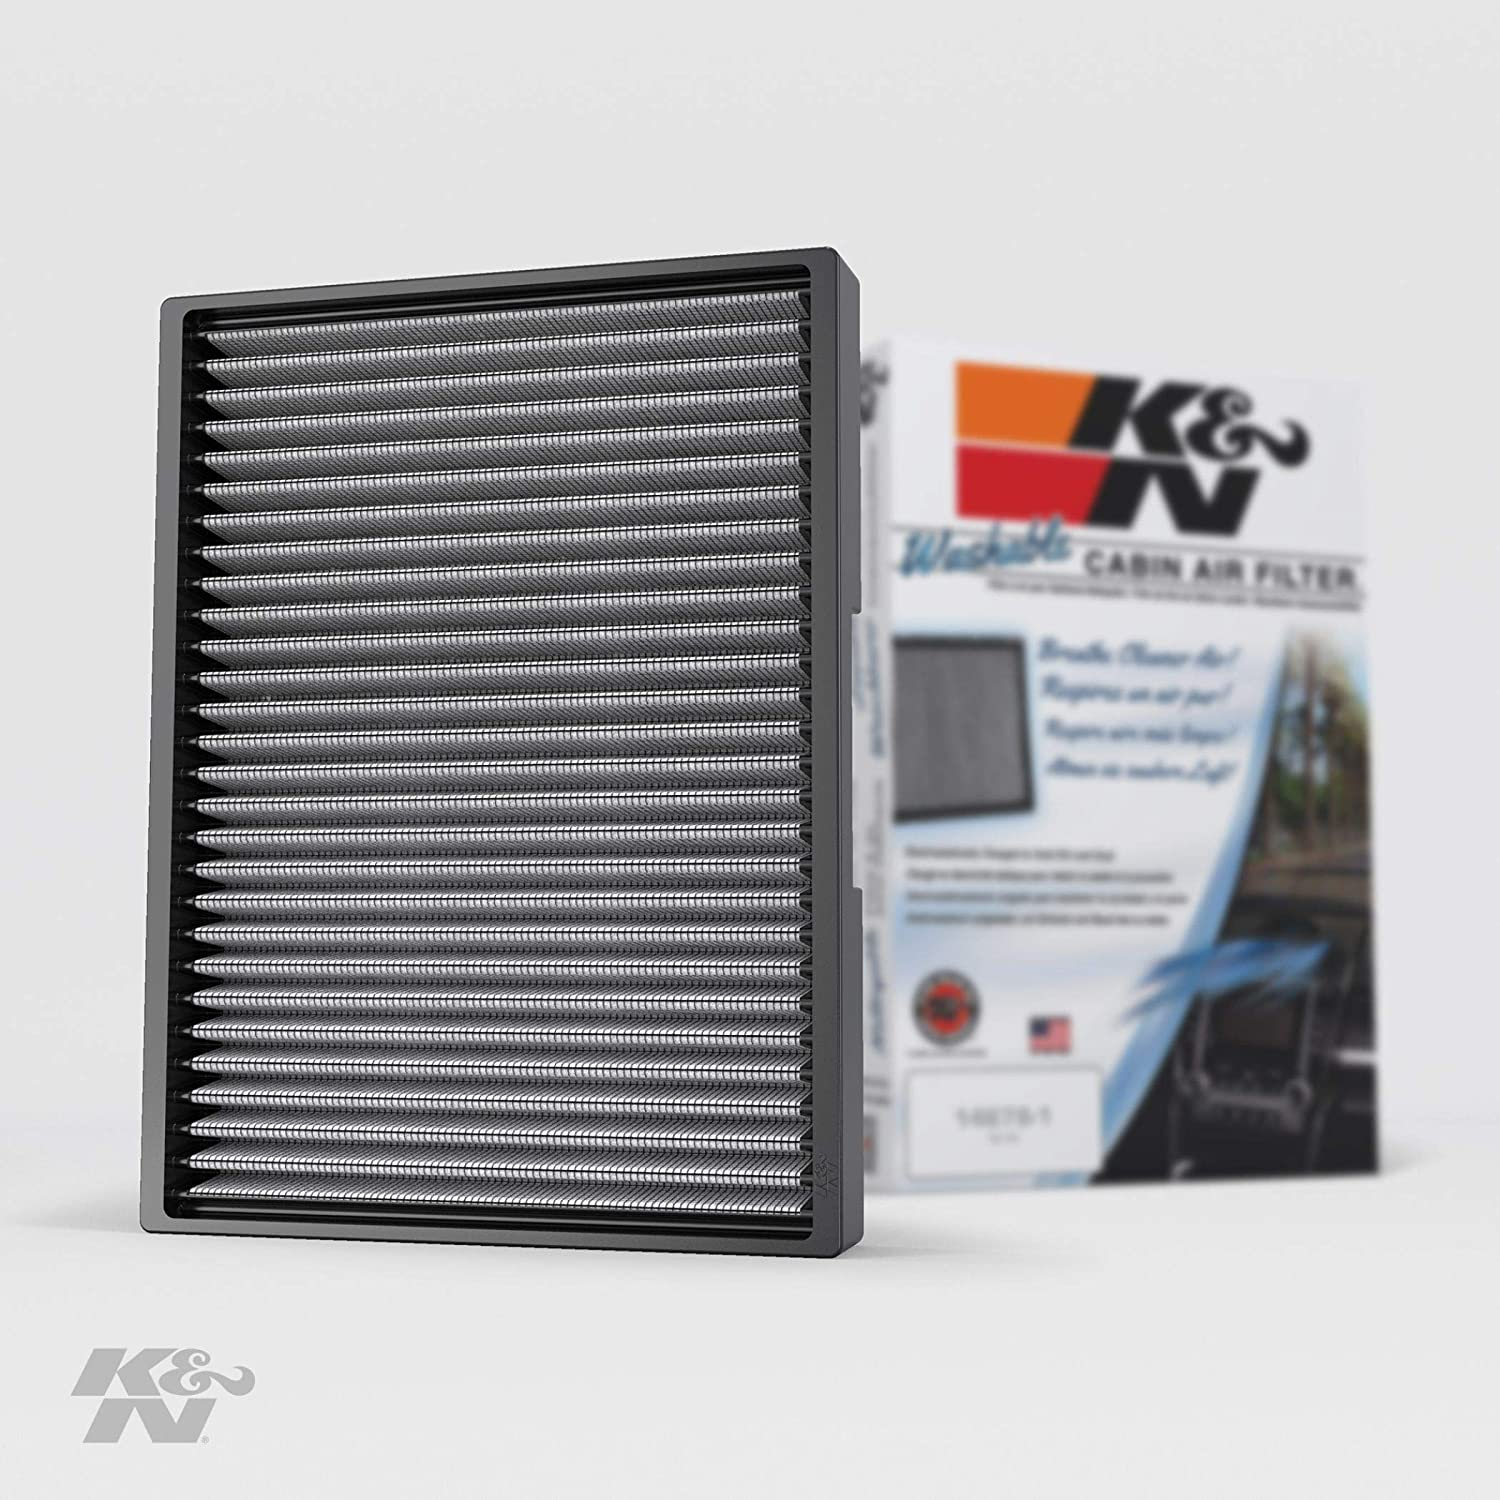 K&N Premium Cabin Air Filter: High Performance, Washable, Lasts for the Life of your Vehicle: Designed for Select 1993-2010 Volkswagen/Audi (Beetle, Golf, Jeta, GTI, Van, Passat, TT, A3), VF2012